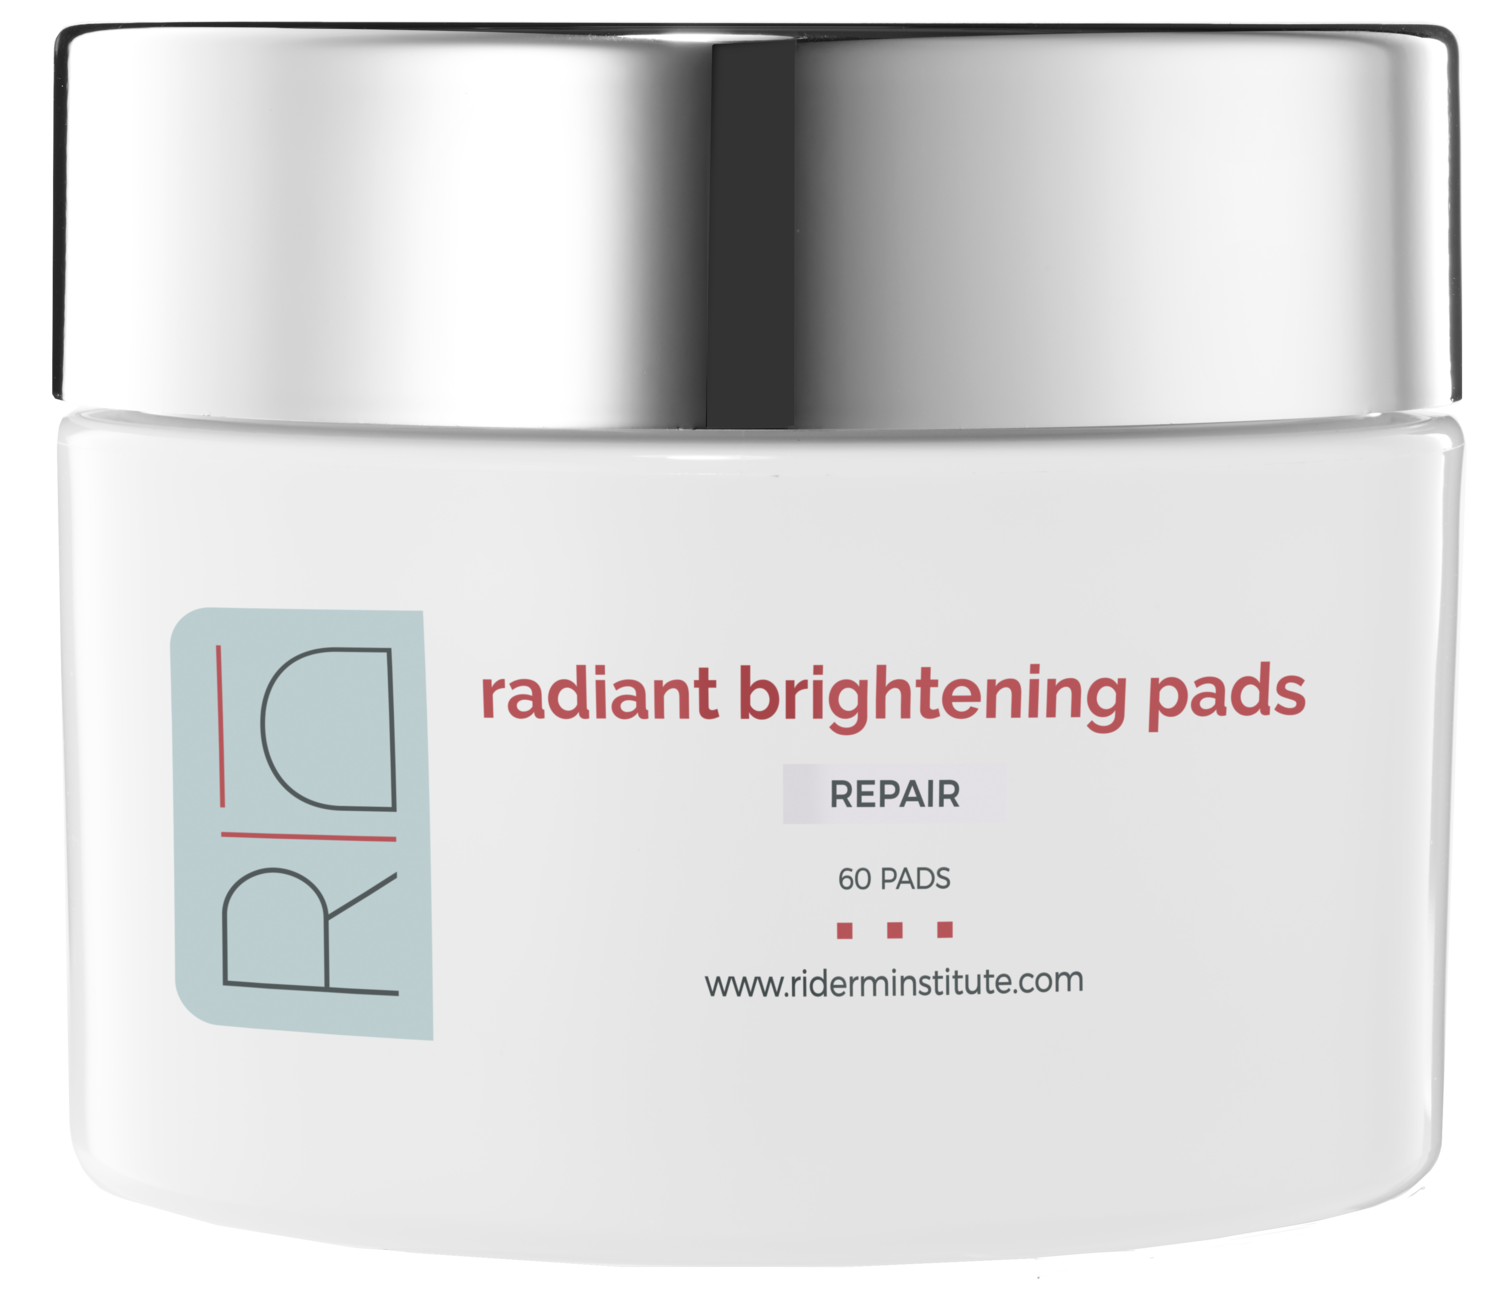 Radiant Brightening Pads